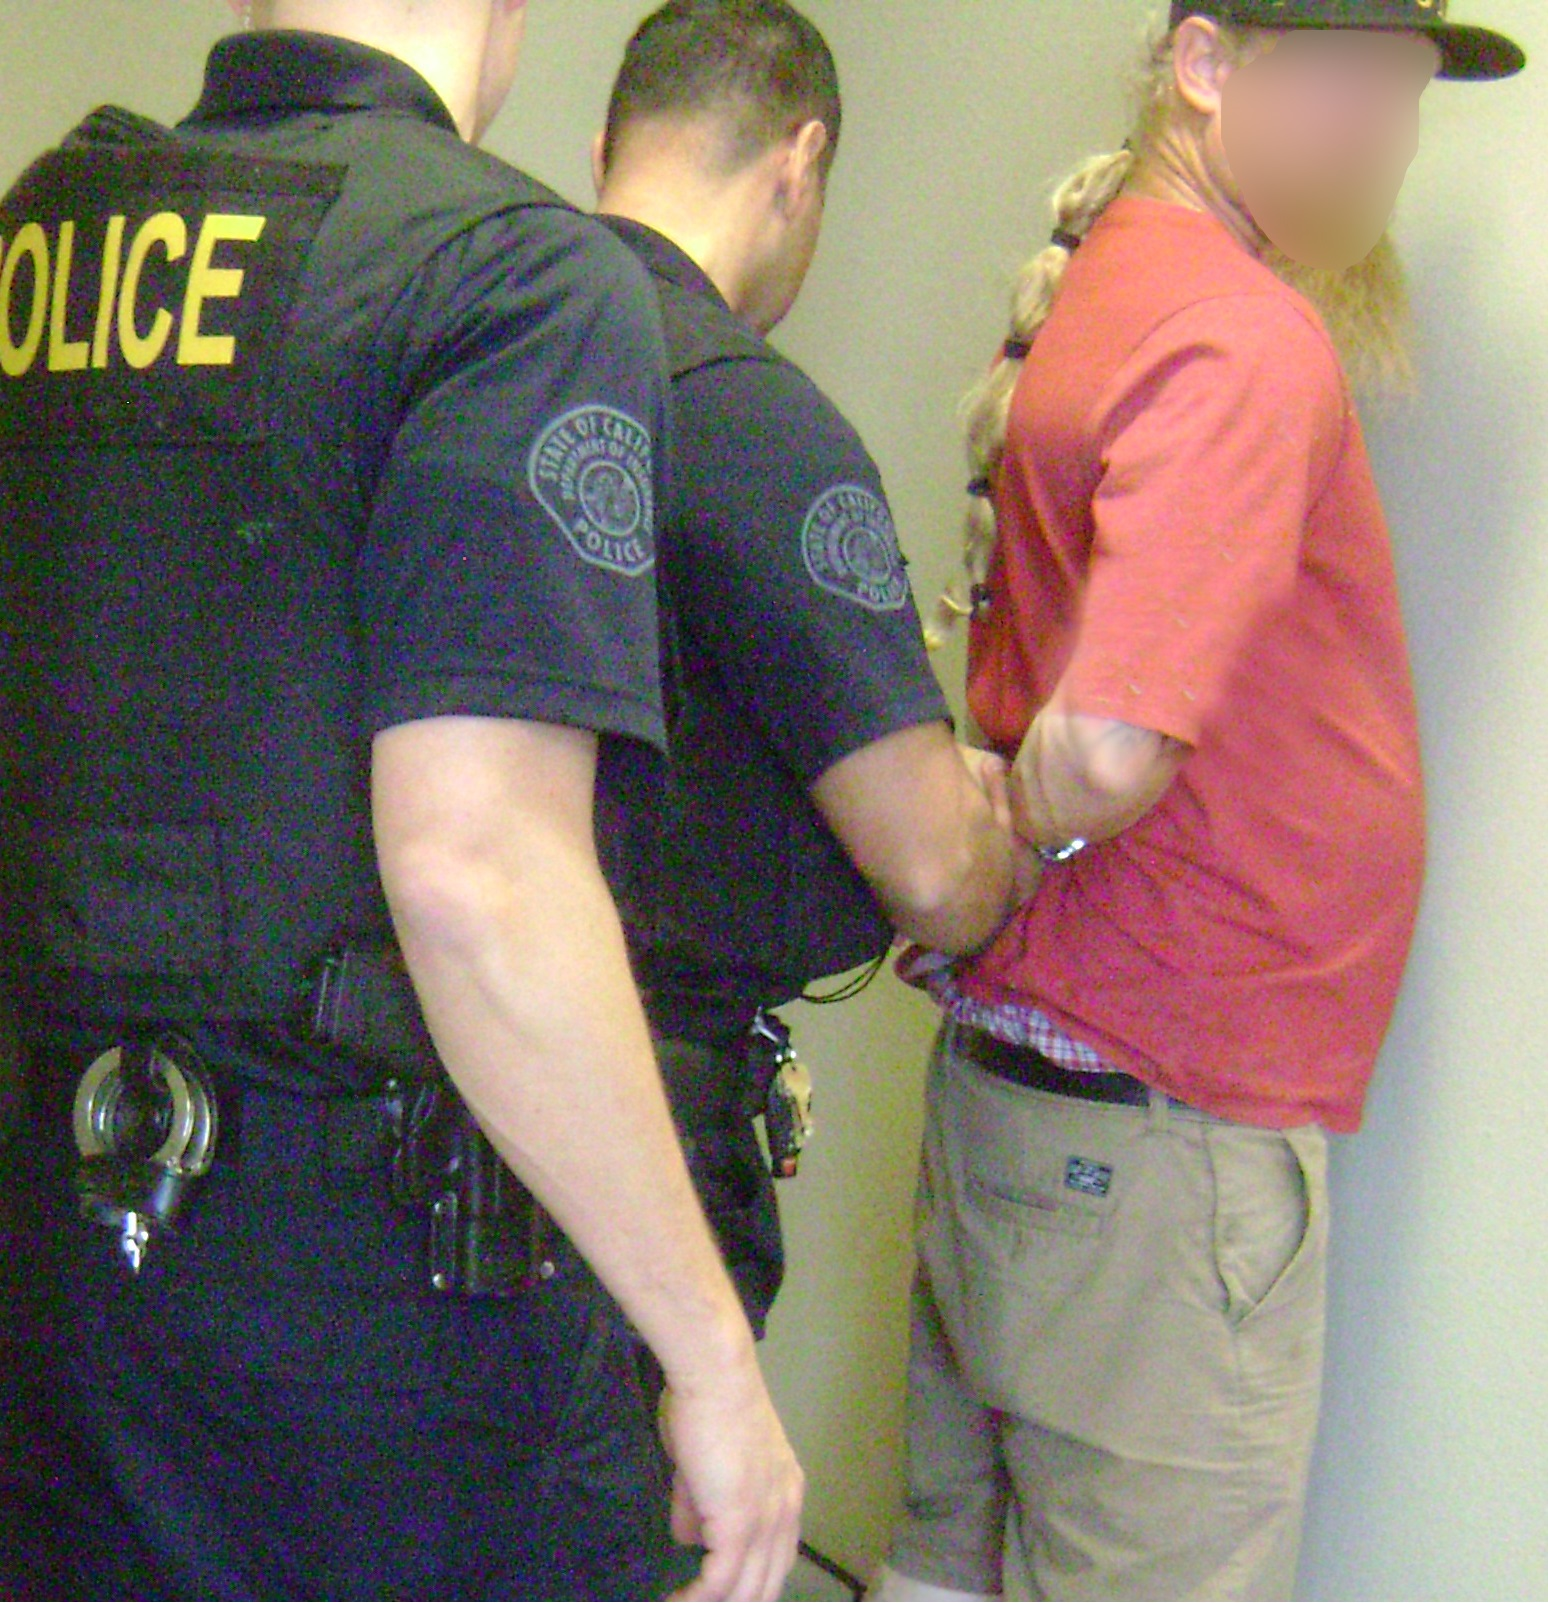 Local law enforcement detaining a suspect to protect SWIFT investigators during the citation process